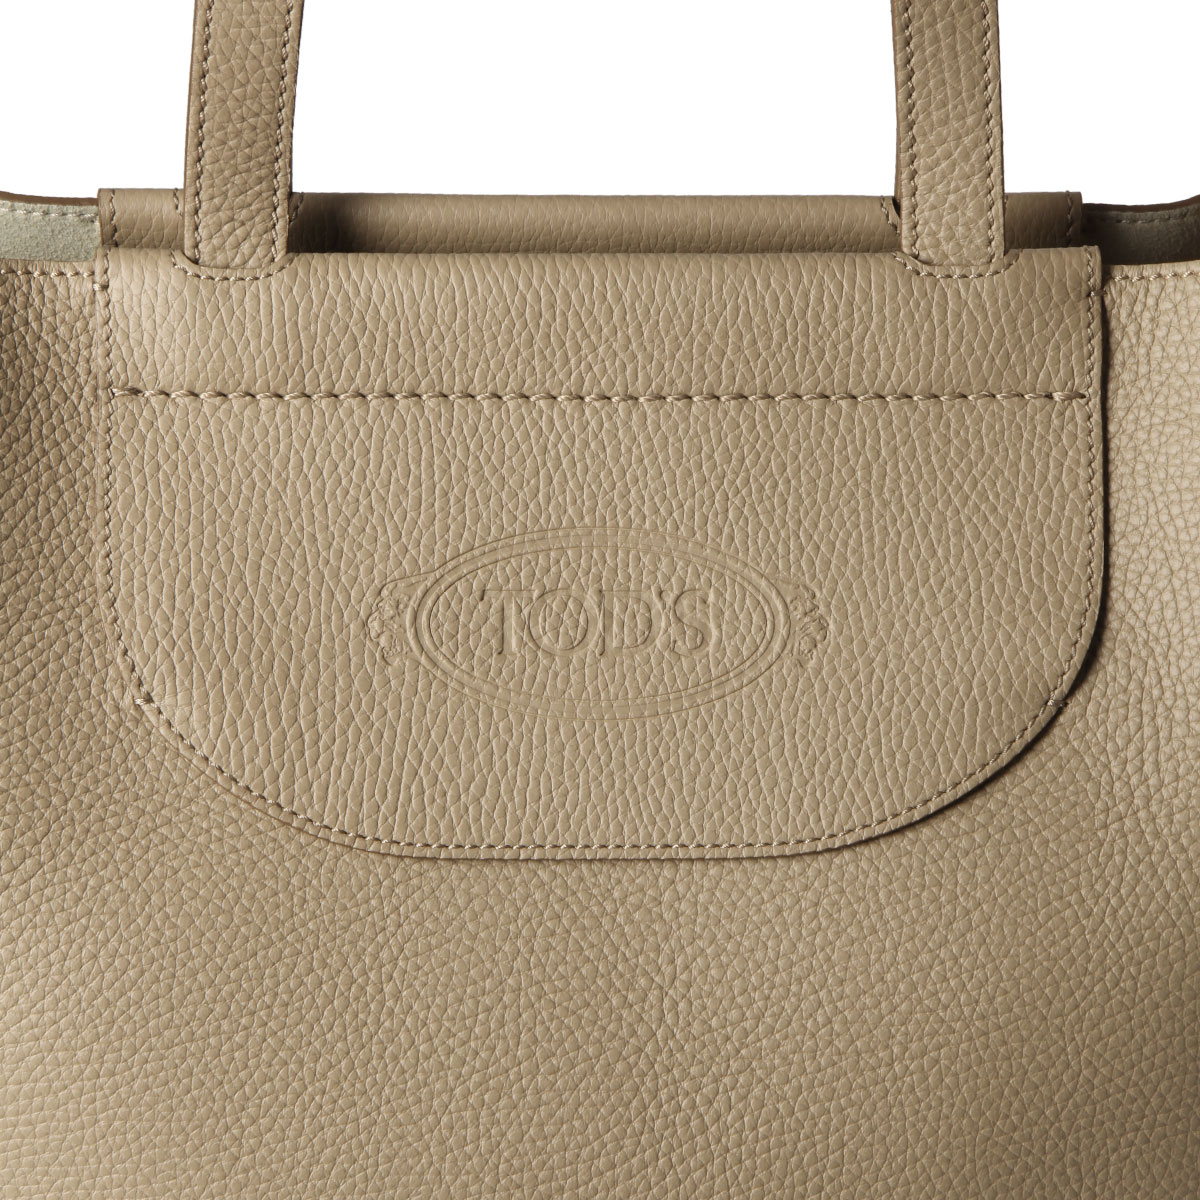 TODS トッズ | トートバッグ ミディアム | SHOPPING ショッピング